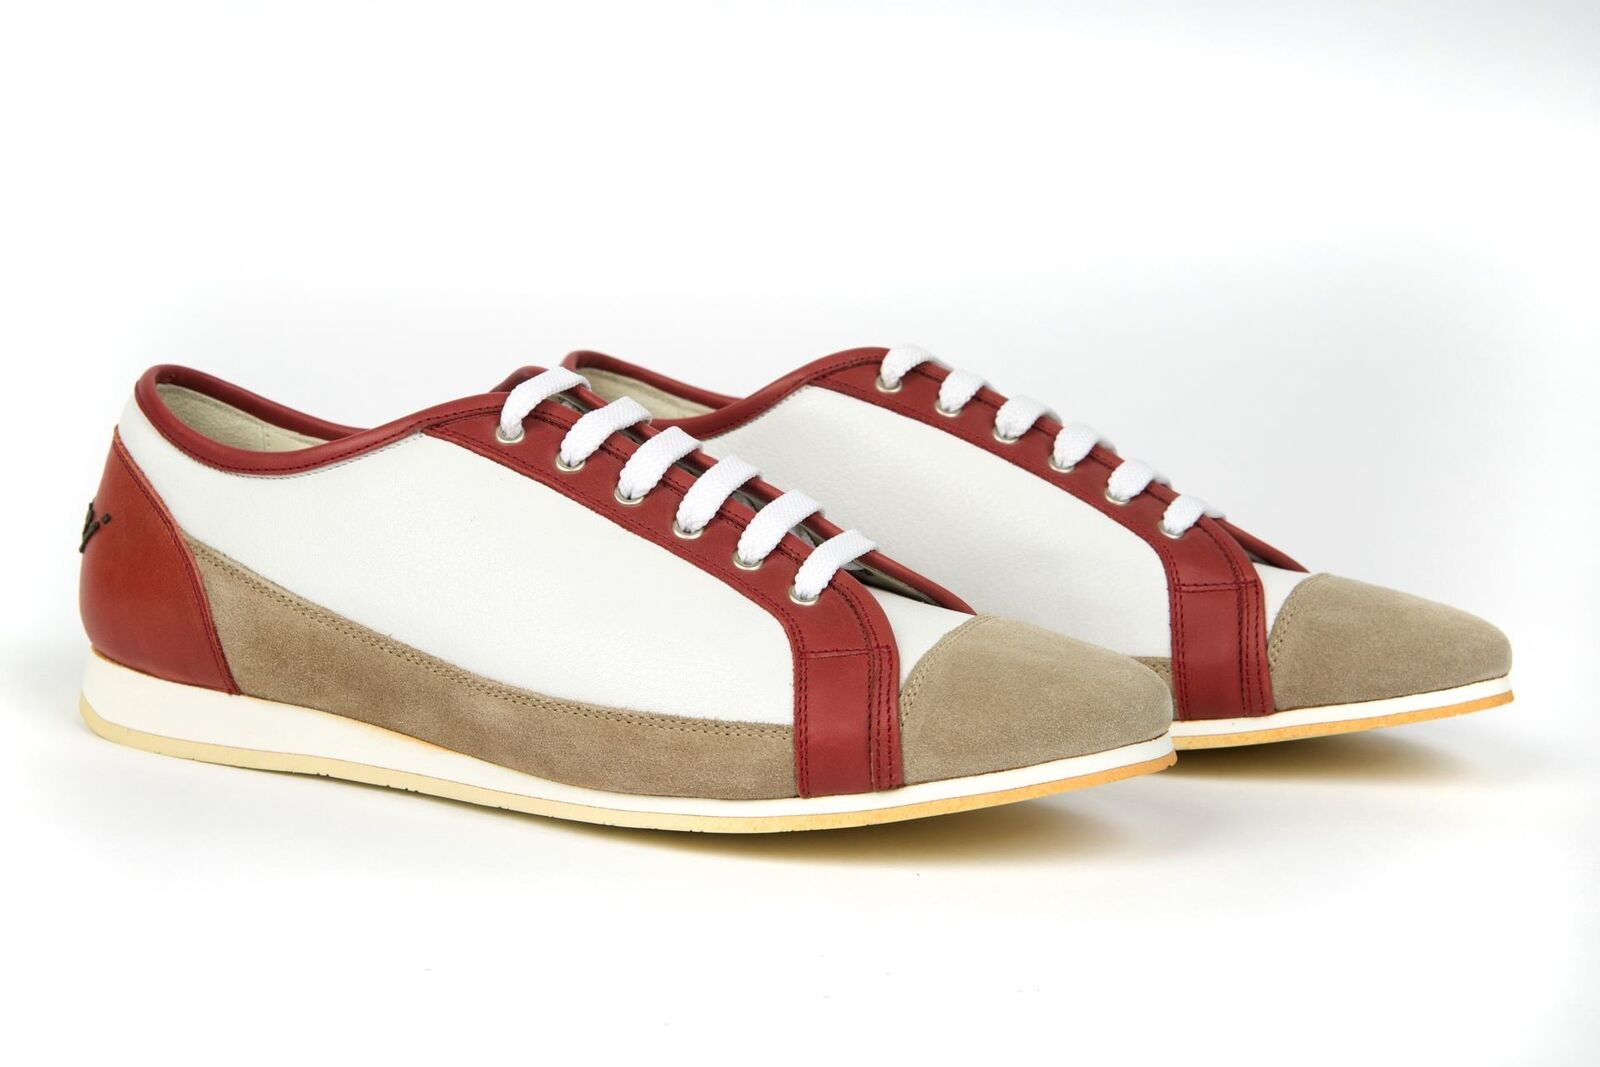 Brioni NIB Red White Beige Leather Suede Fashion Sneakers shoes 42 EU 9 US